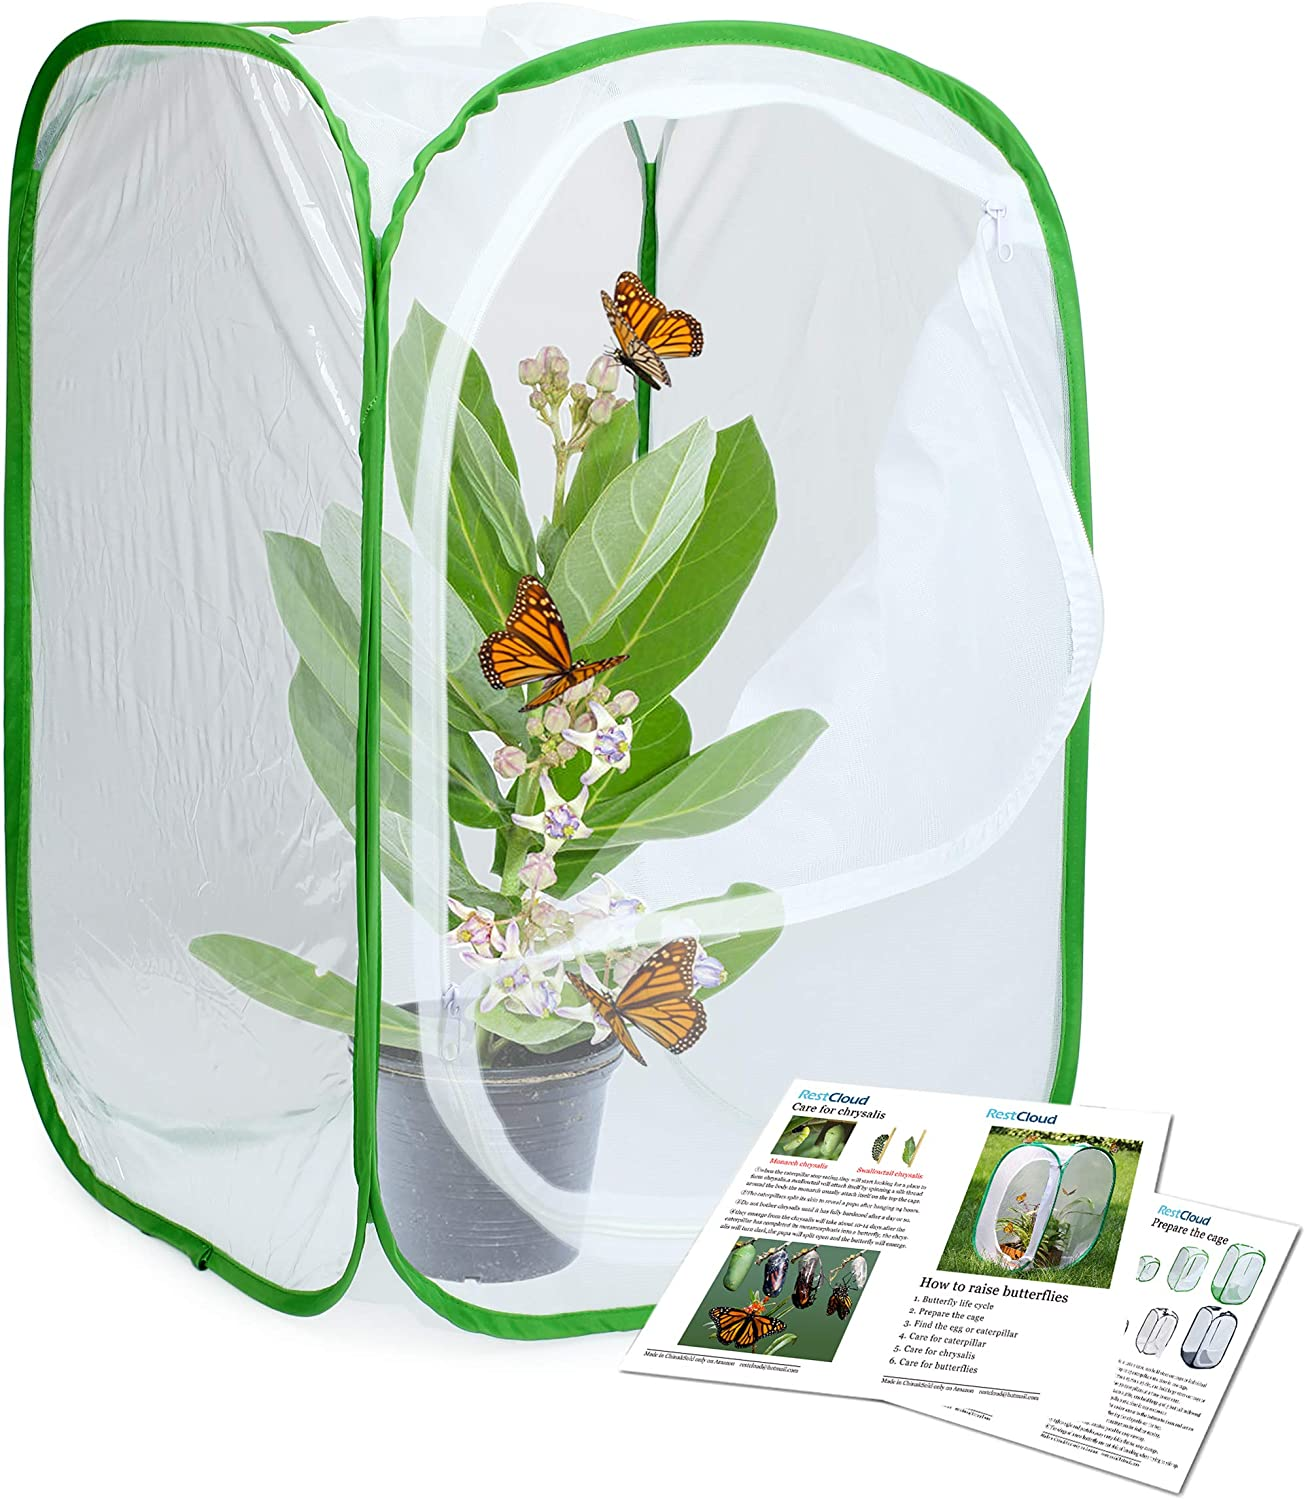 nsect and Butterfly Habitat Cage